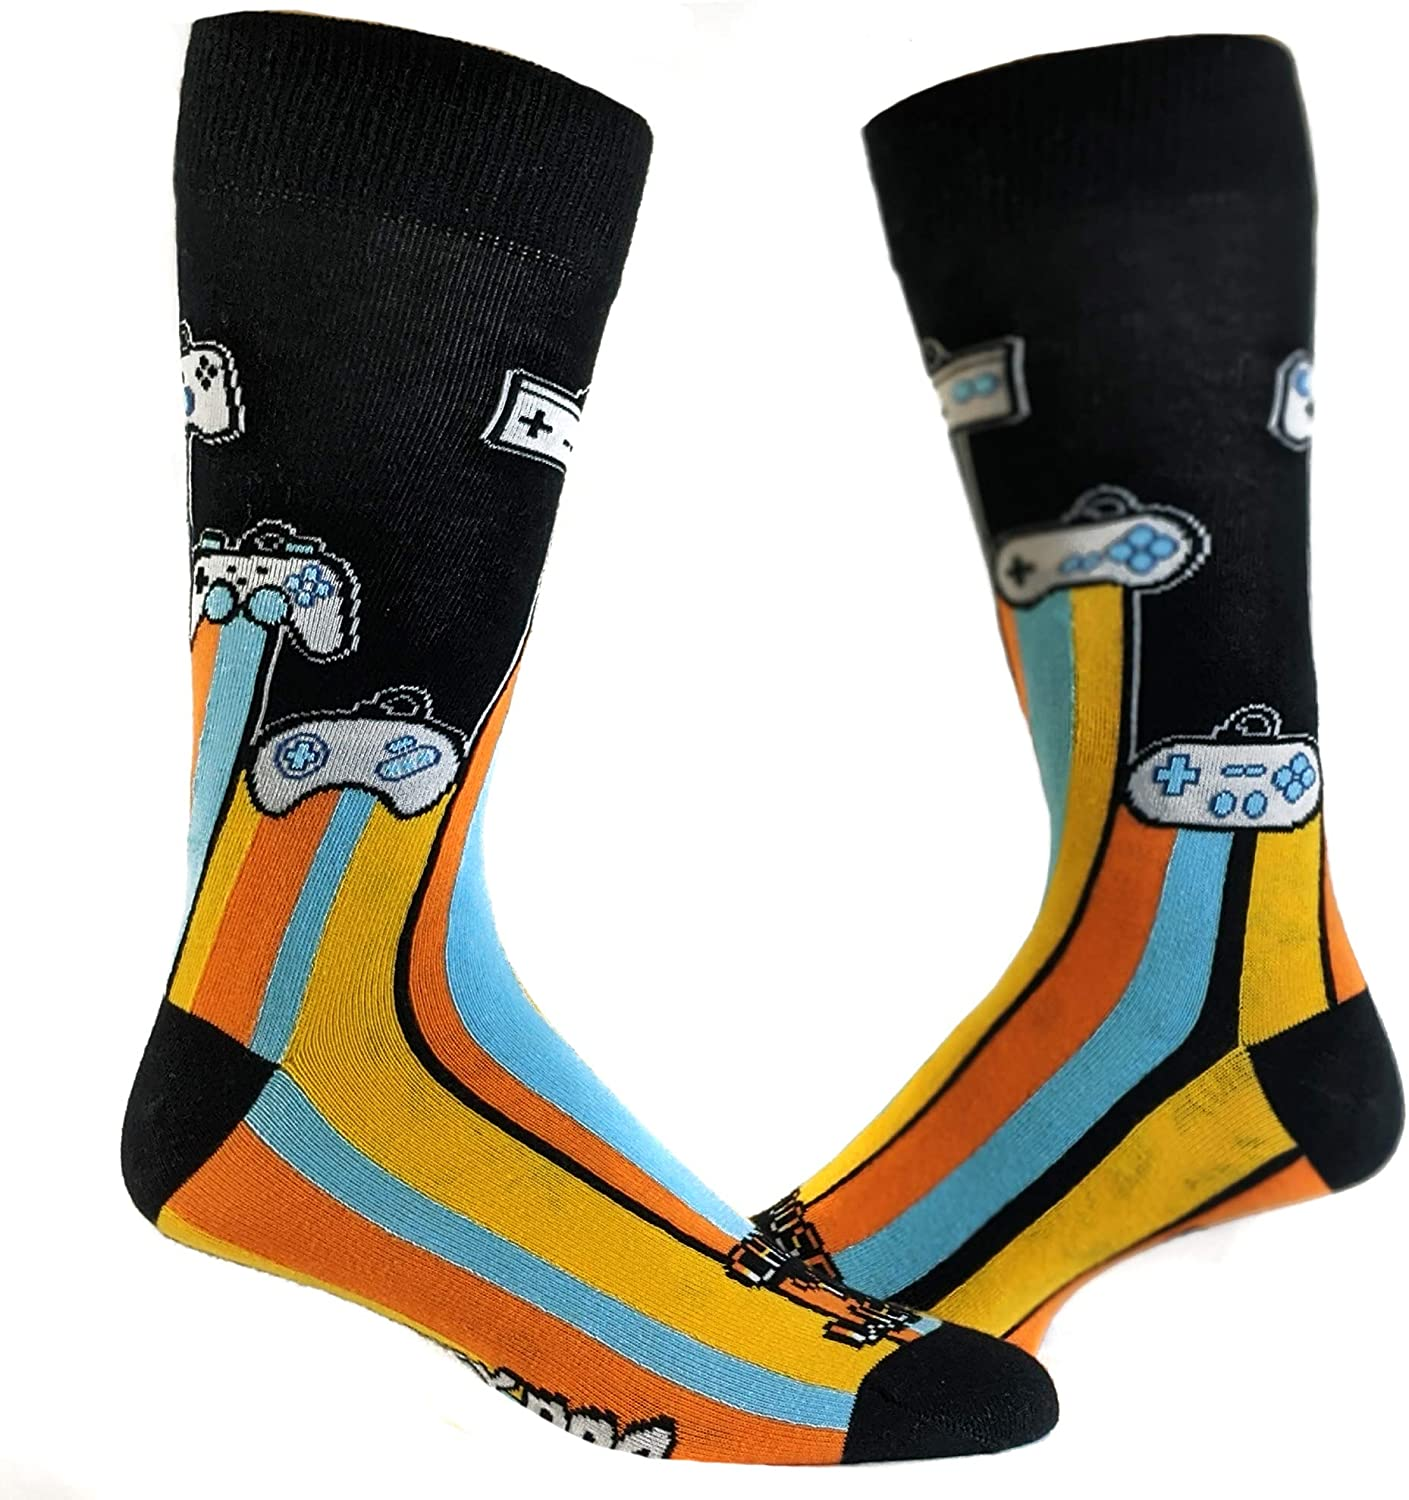 Gamer Socks Cool Funny Video Game Nerdy Footwear